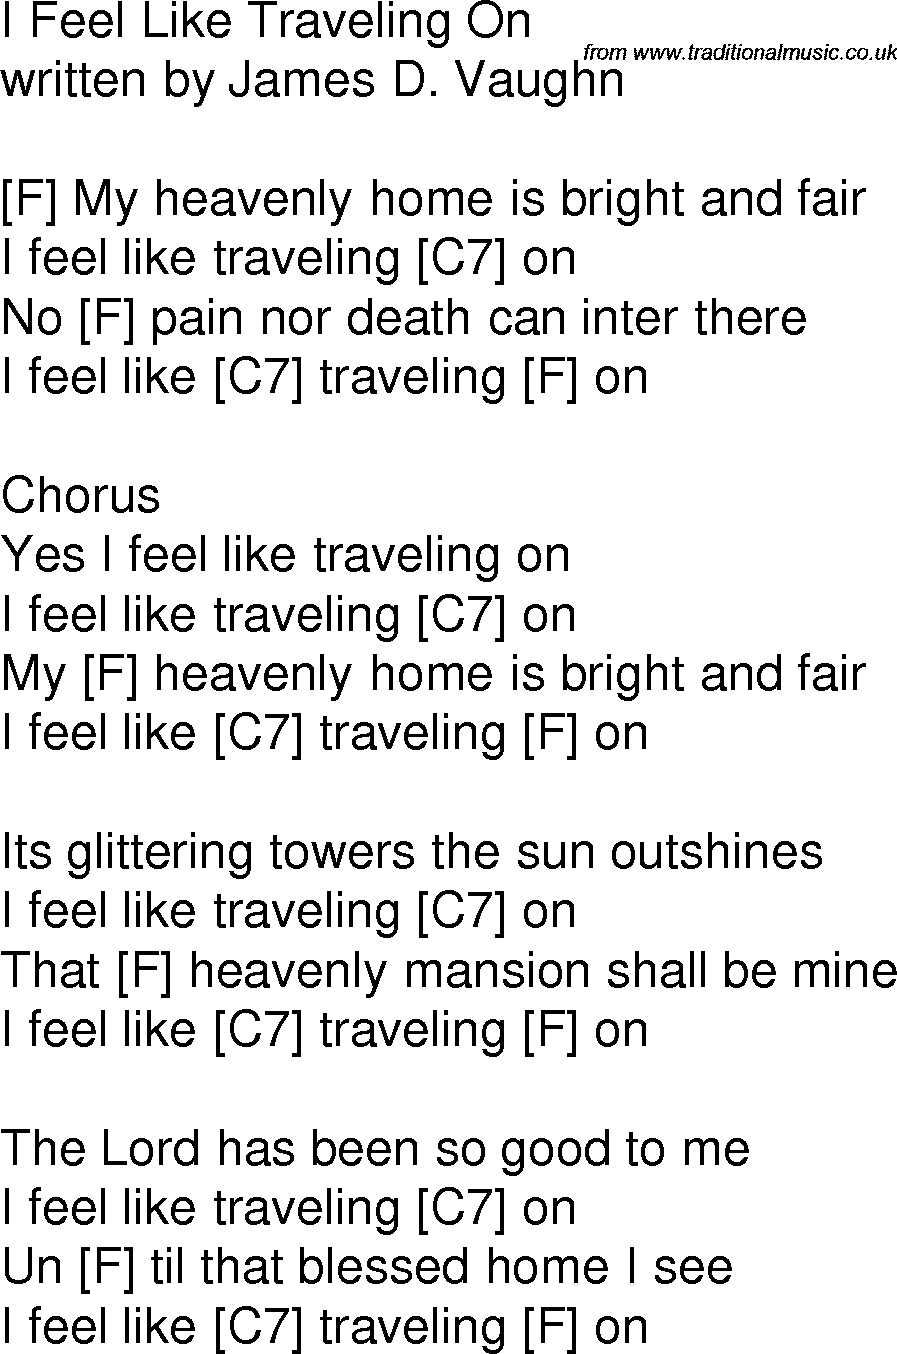 download traveling song will